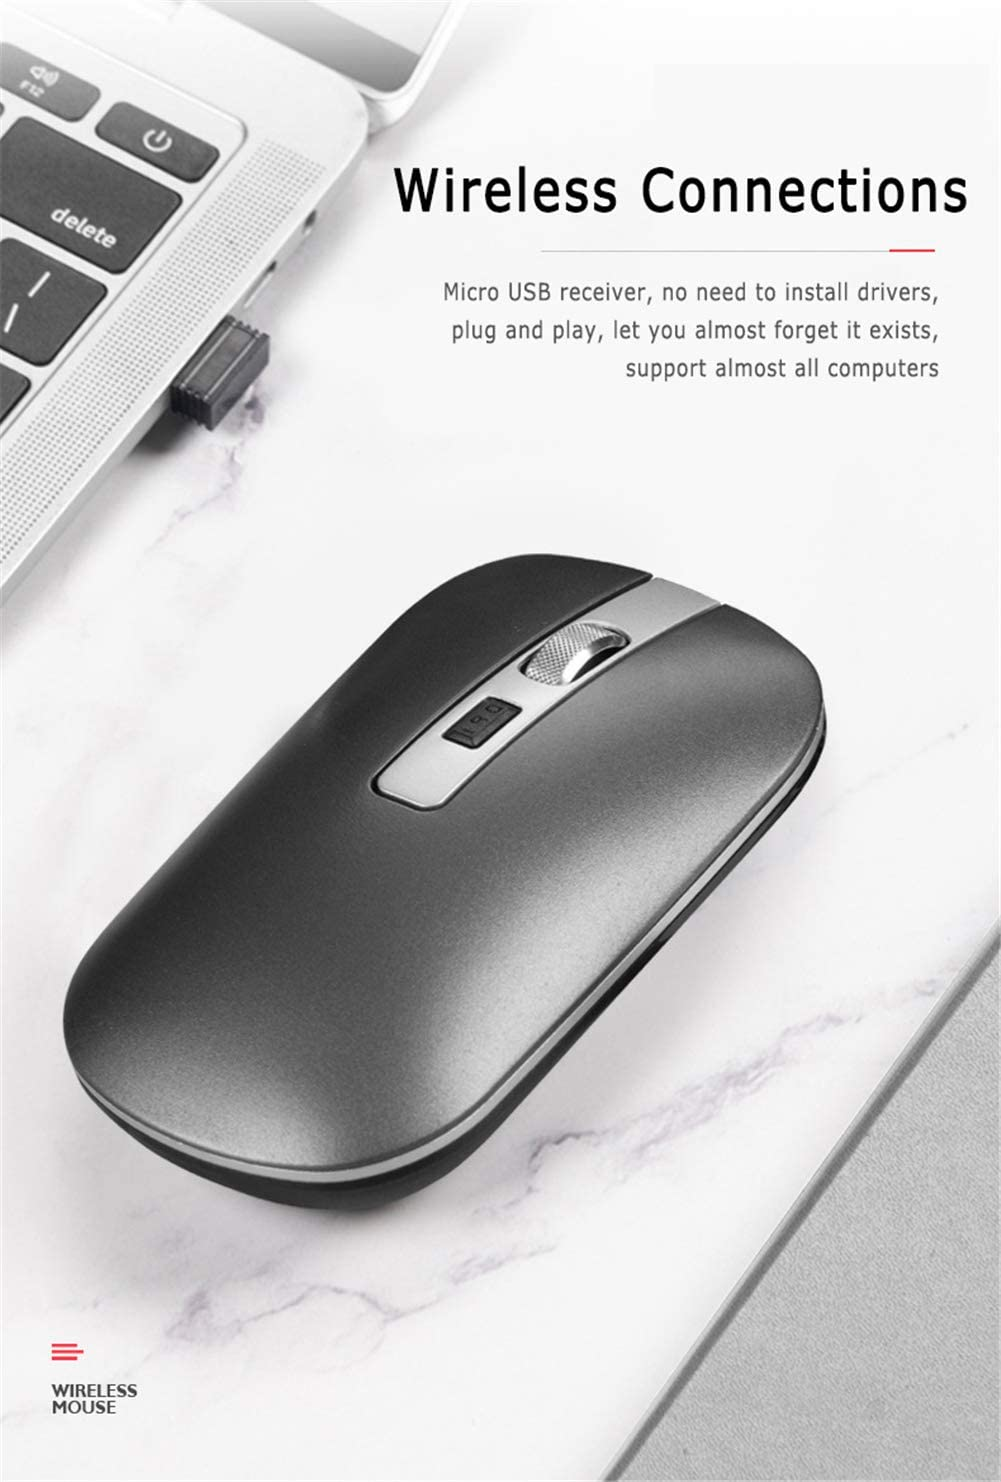 Ergonomic Design,Silver Bluetooth 5.1 Dual-Mode Wireless Rechargeable 1600 DPI Ultra-Thin Ergonomic Portable Optical Mouse 2 in 1 Wireless Mouse 2.4G